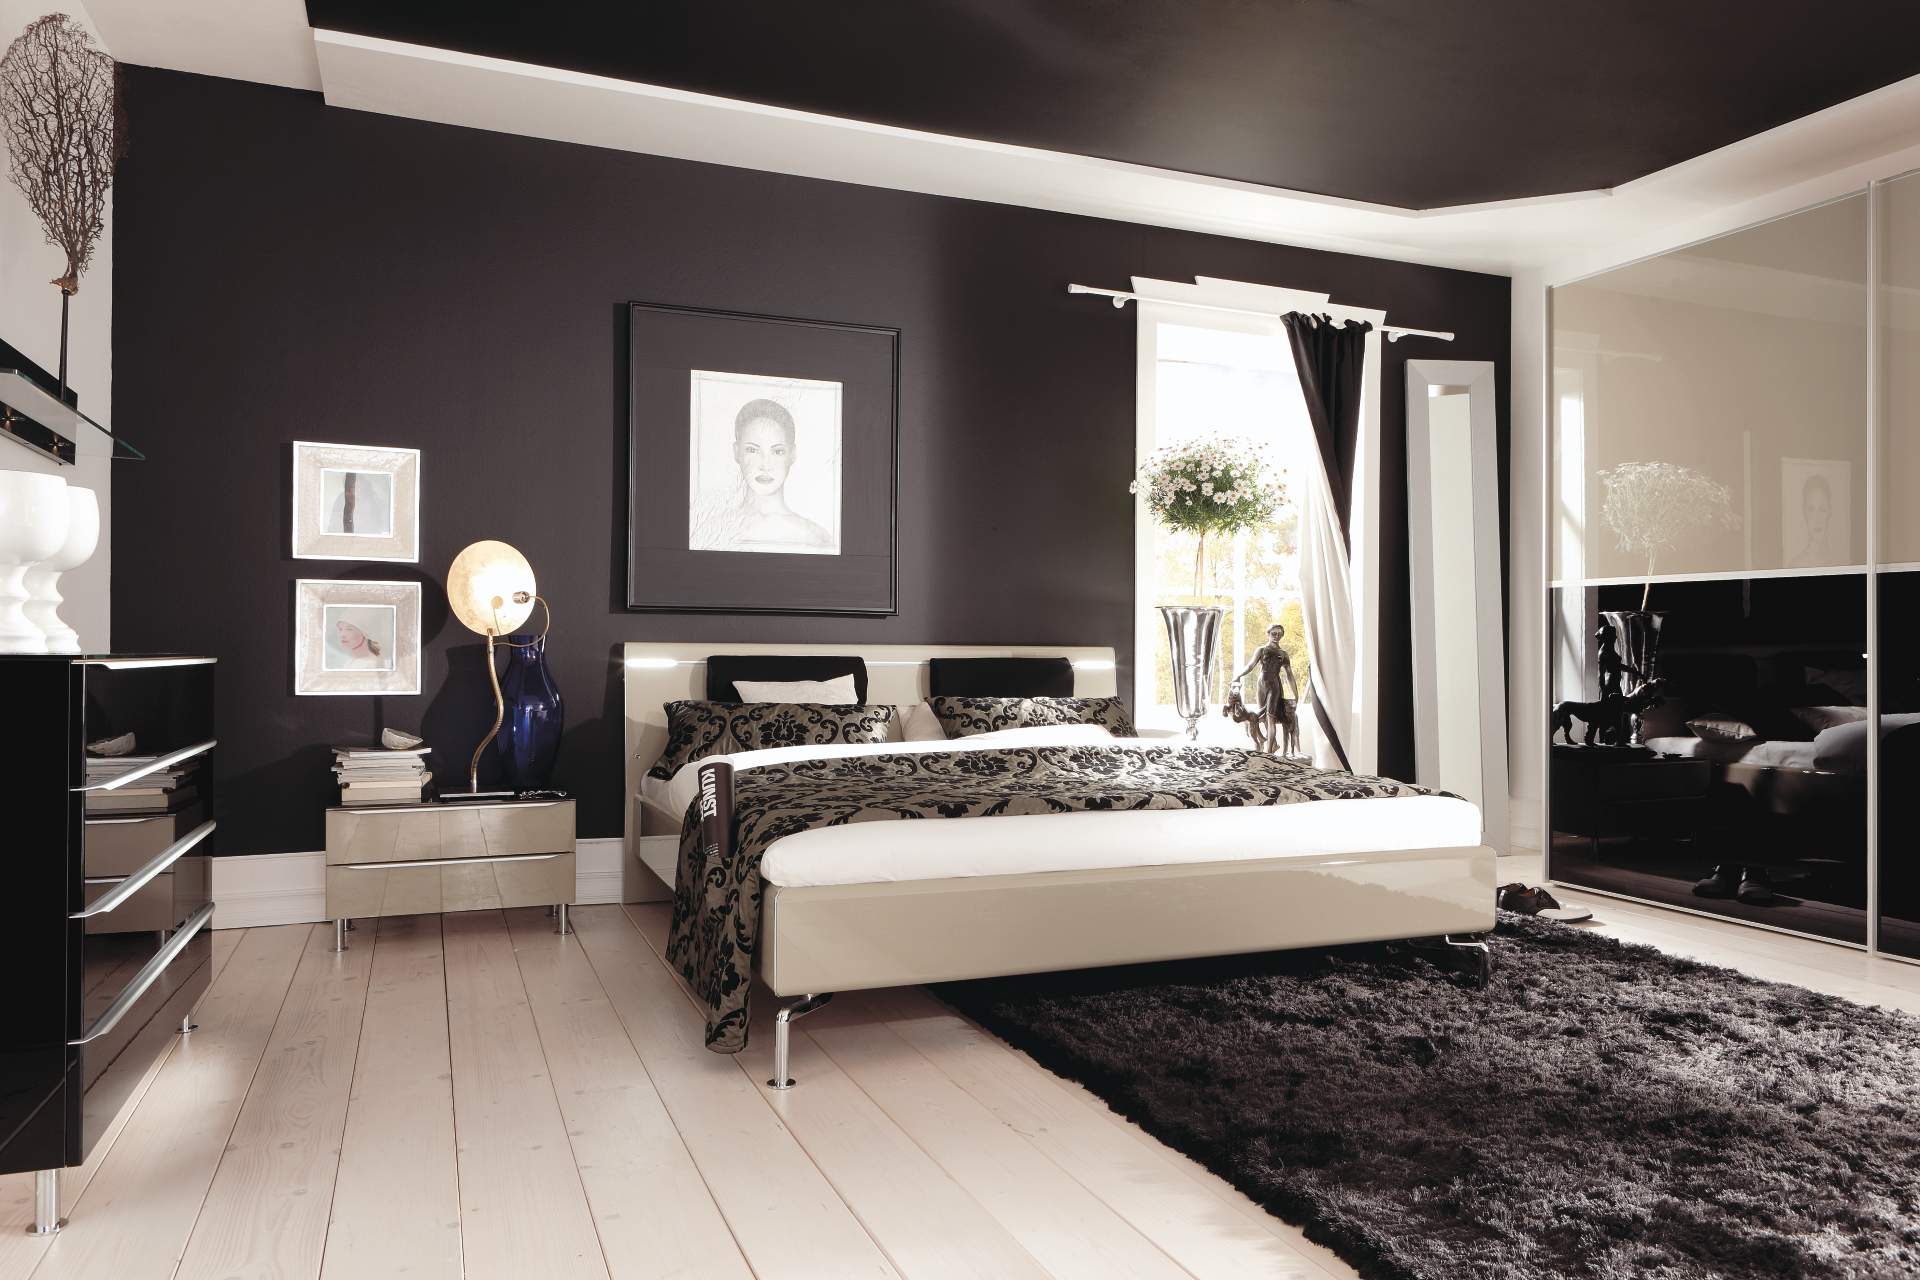 Dazzling Bedroom Queen Size Bed Dimensions Ideas (View 2 of 10)